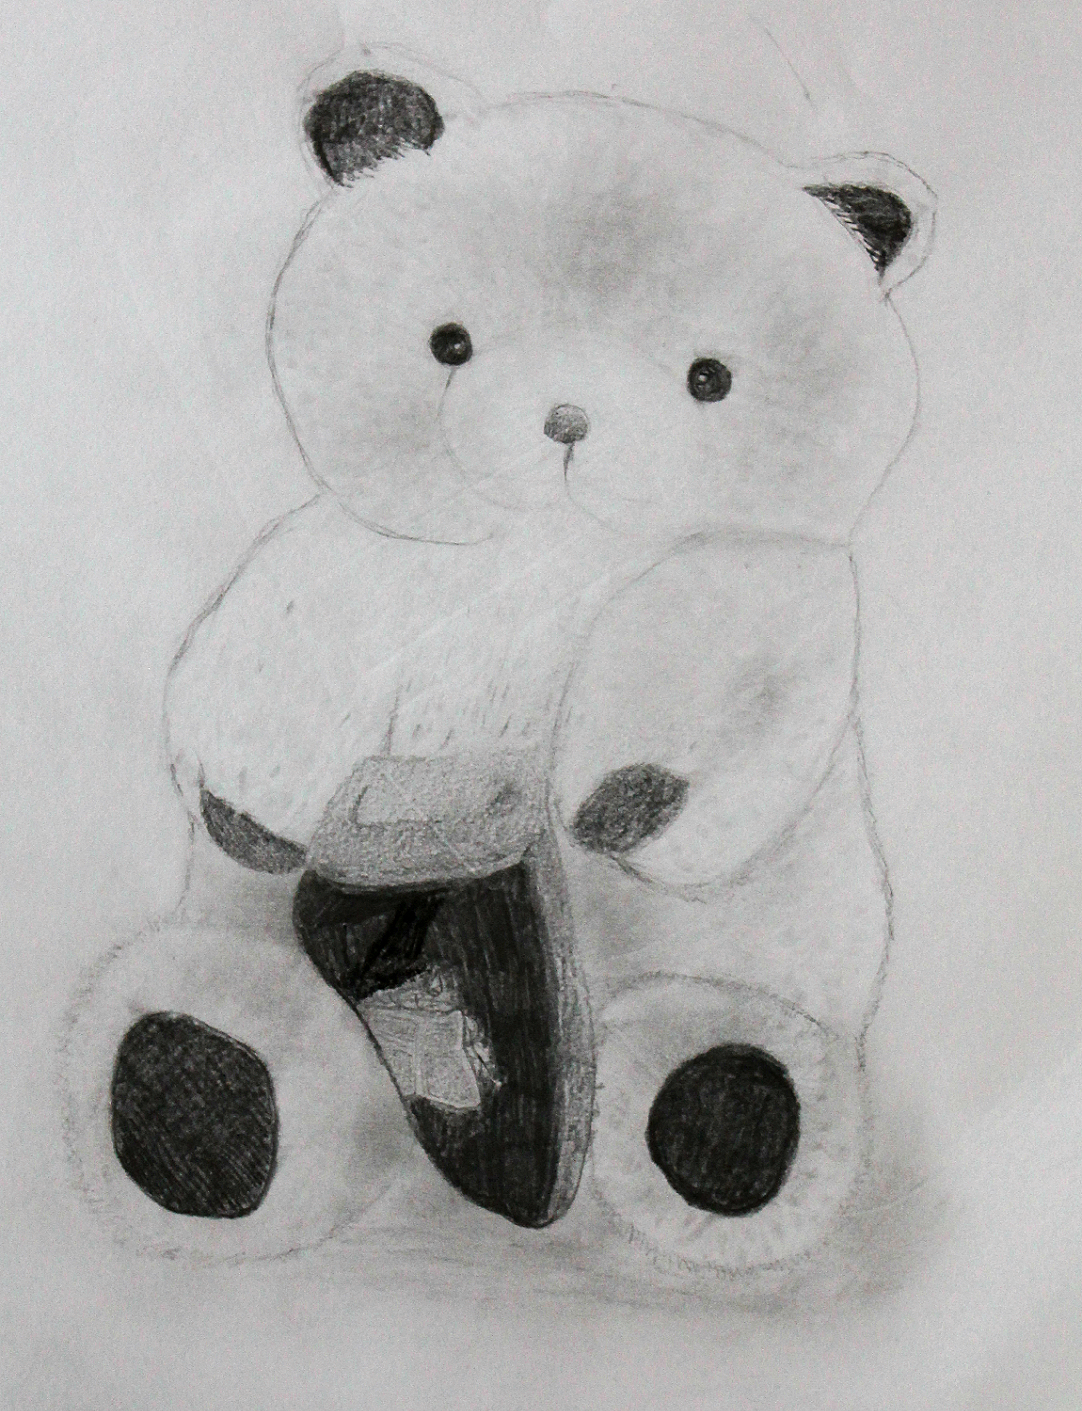 Charcoal-teddy by LemonicDemon